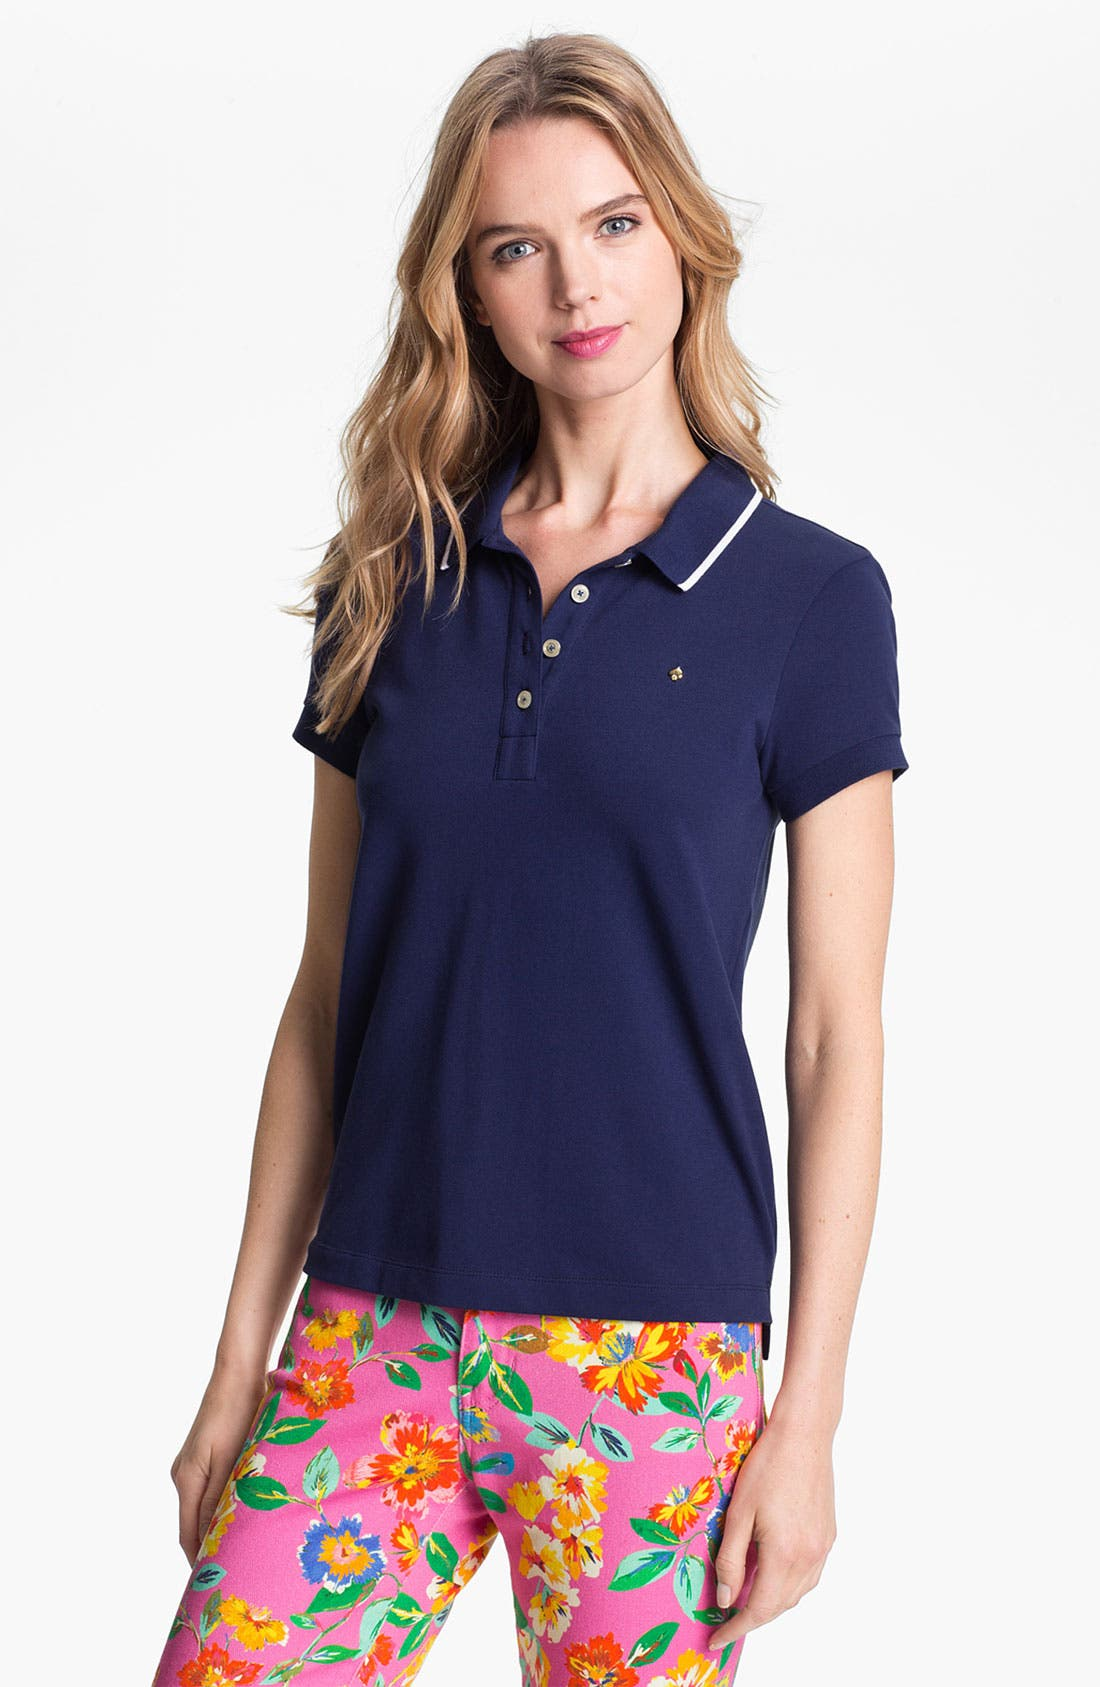 Alternate Image 1 Selected - kate spade new york 'spade' polo